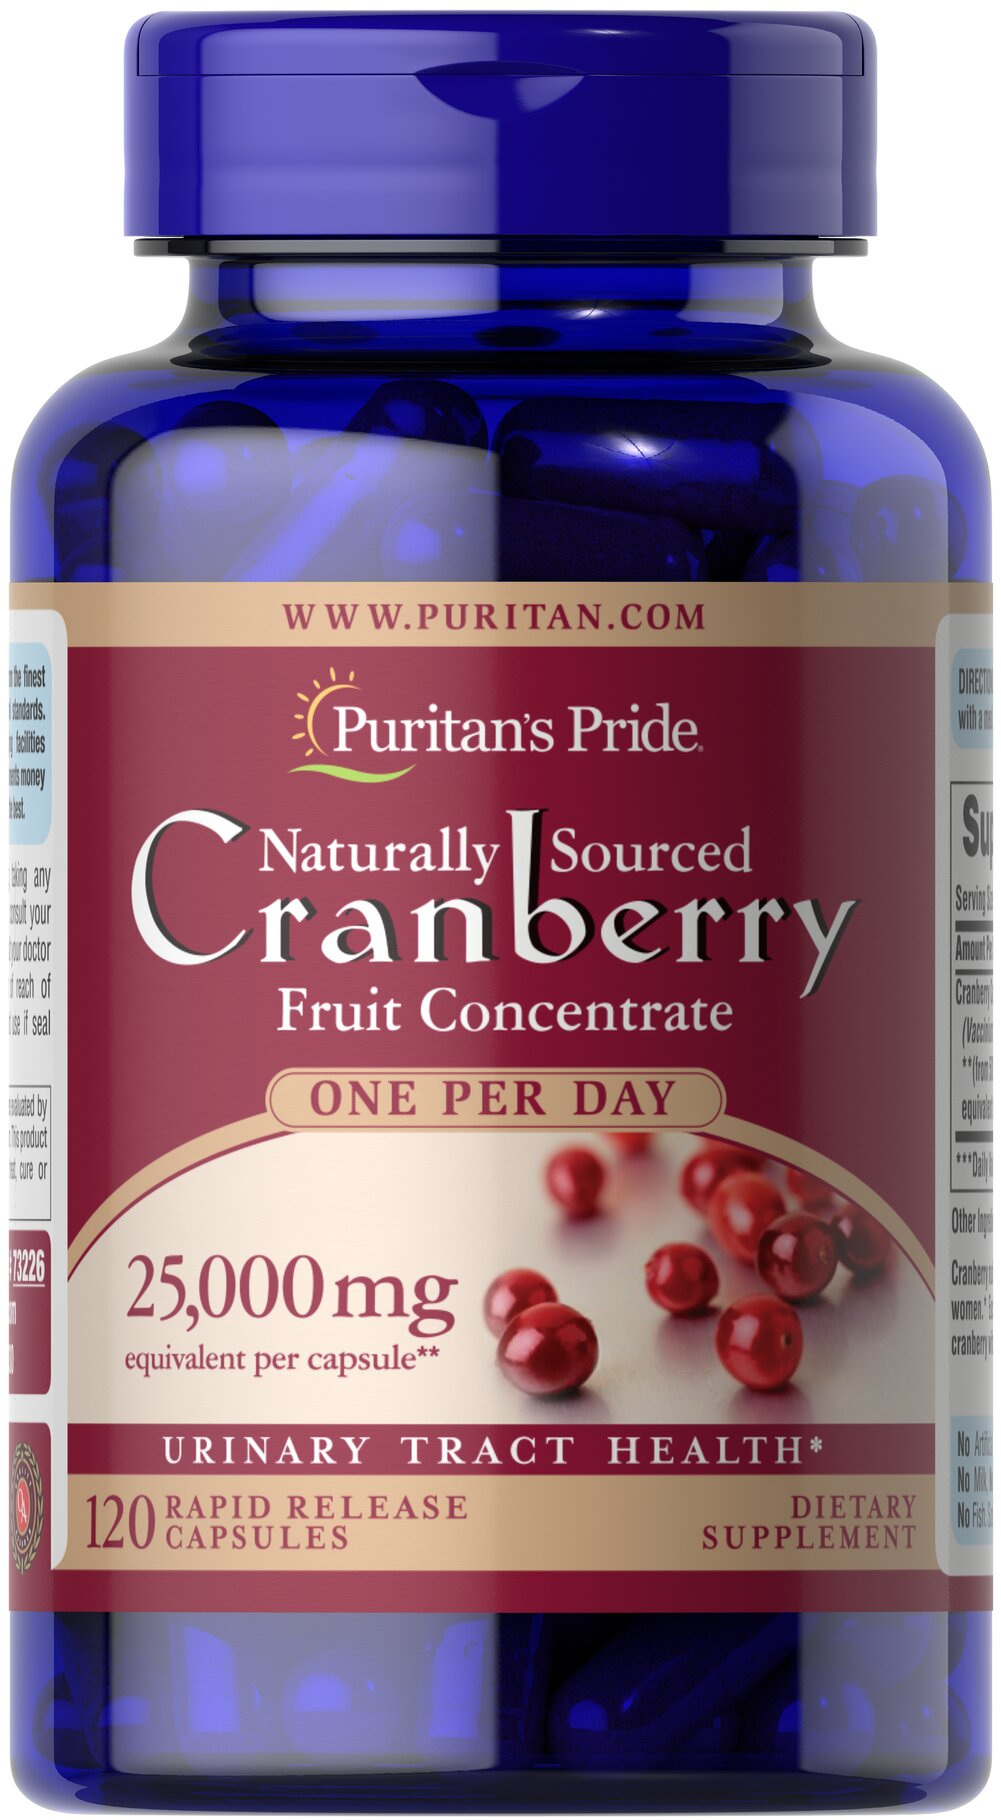 One A Day Cranberry <p>Equivalent to 25,000 mg of Cranberry Fruit per Capsule.</p><p>For years, health experts have recommended cranberry to help promote urinary tract health.**</p><p>Each dose provides the natural benefits of the whole cranberry without any preservatives, sugars, water, flavoring or color.</p> 120 Capsules 500 mg $18.84